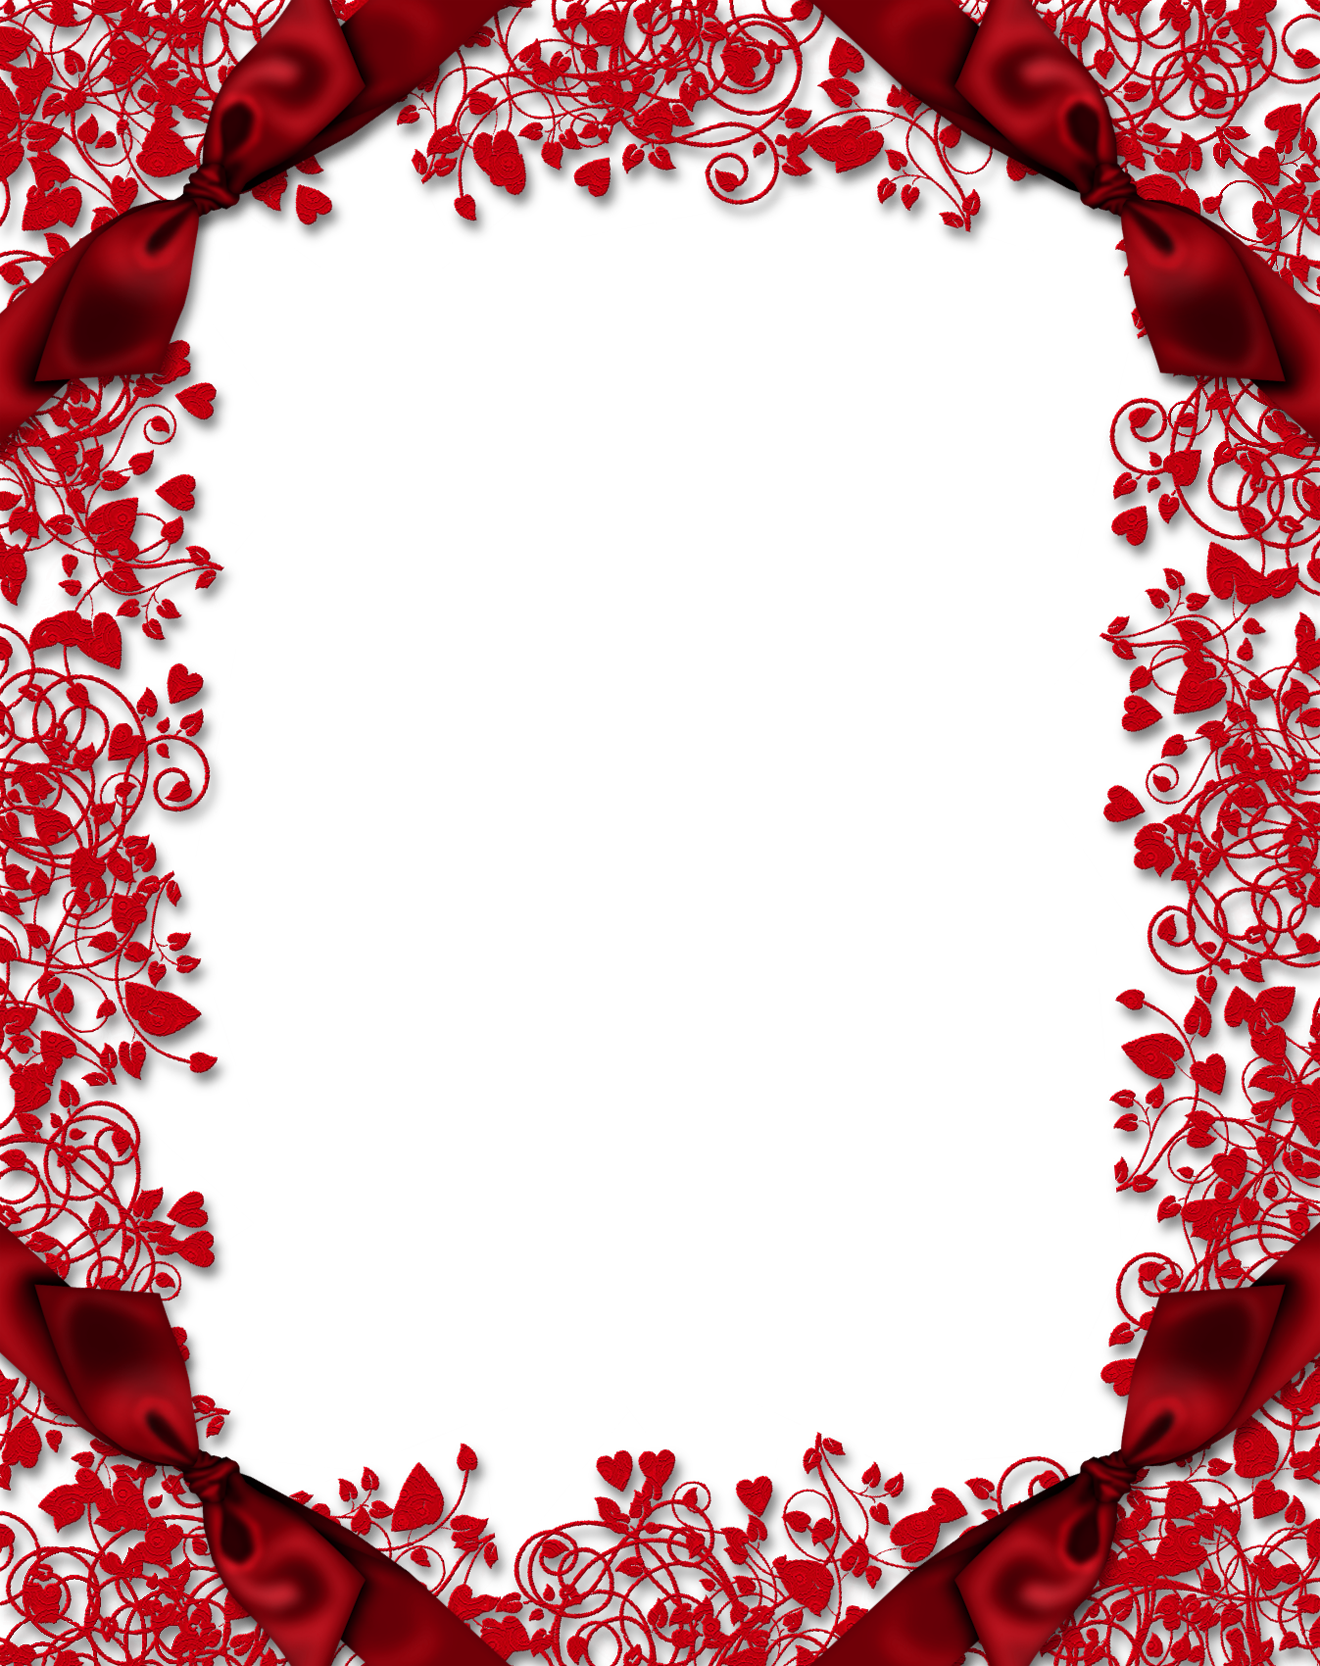 Red Transparent PNG Frame with Hearts and Bows | Borders & Frames ...